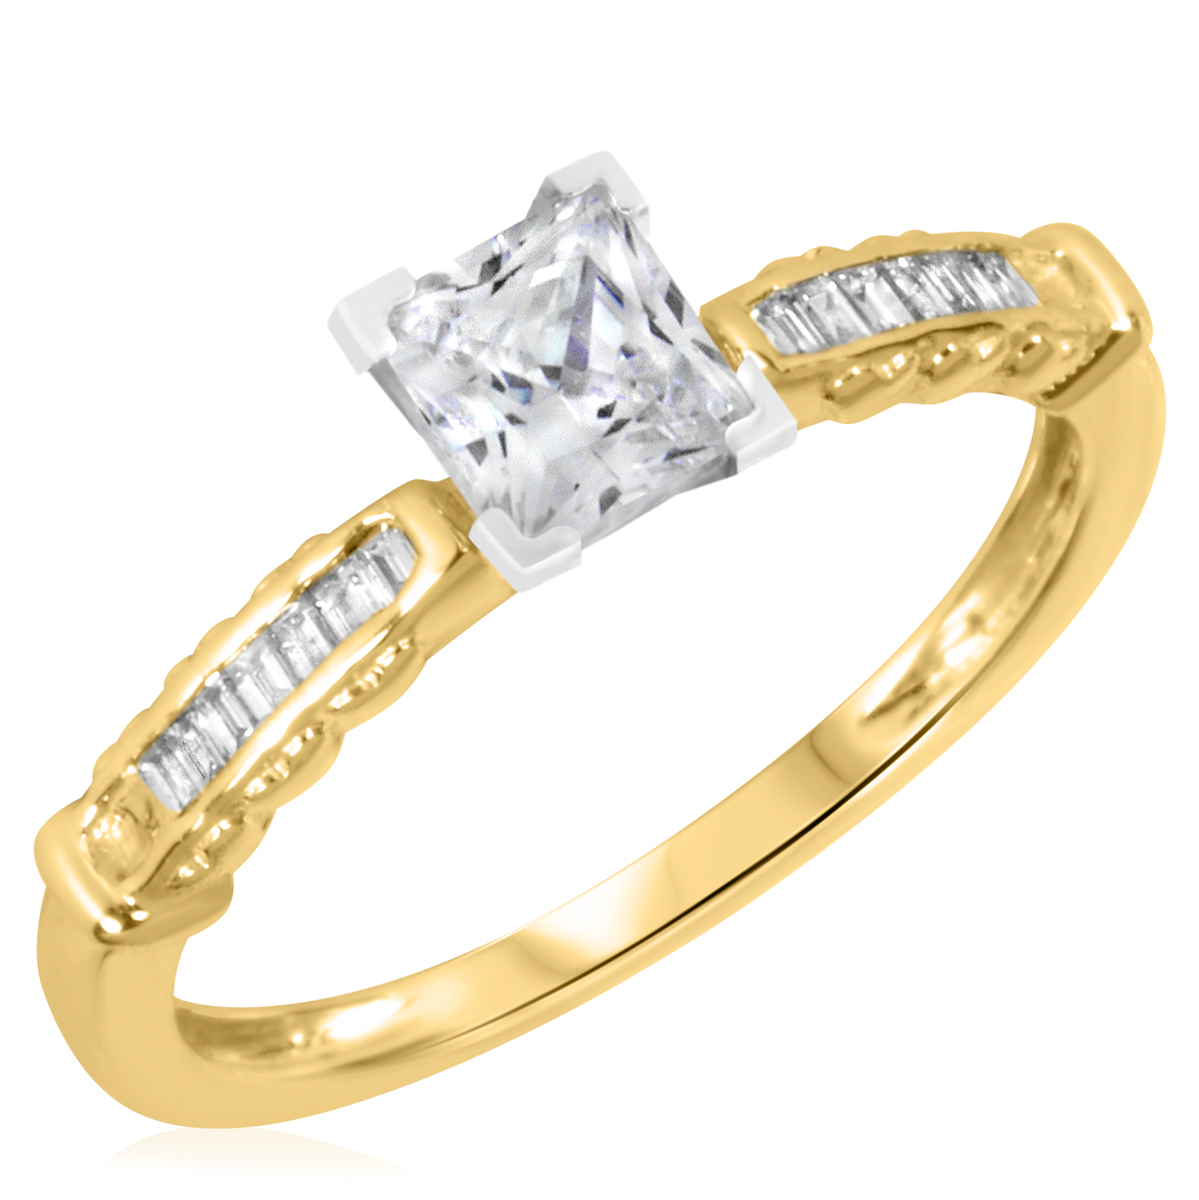 1 1/6 CT. T.W. Diamond Ladies Engagement Ring 14K Yellow Gold- Size 8